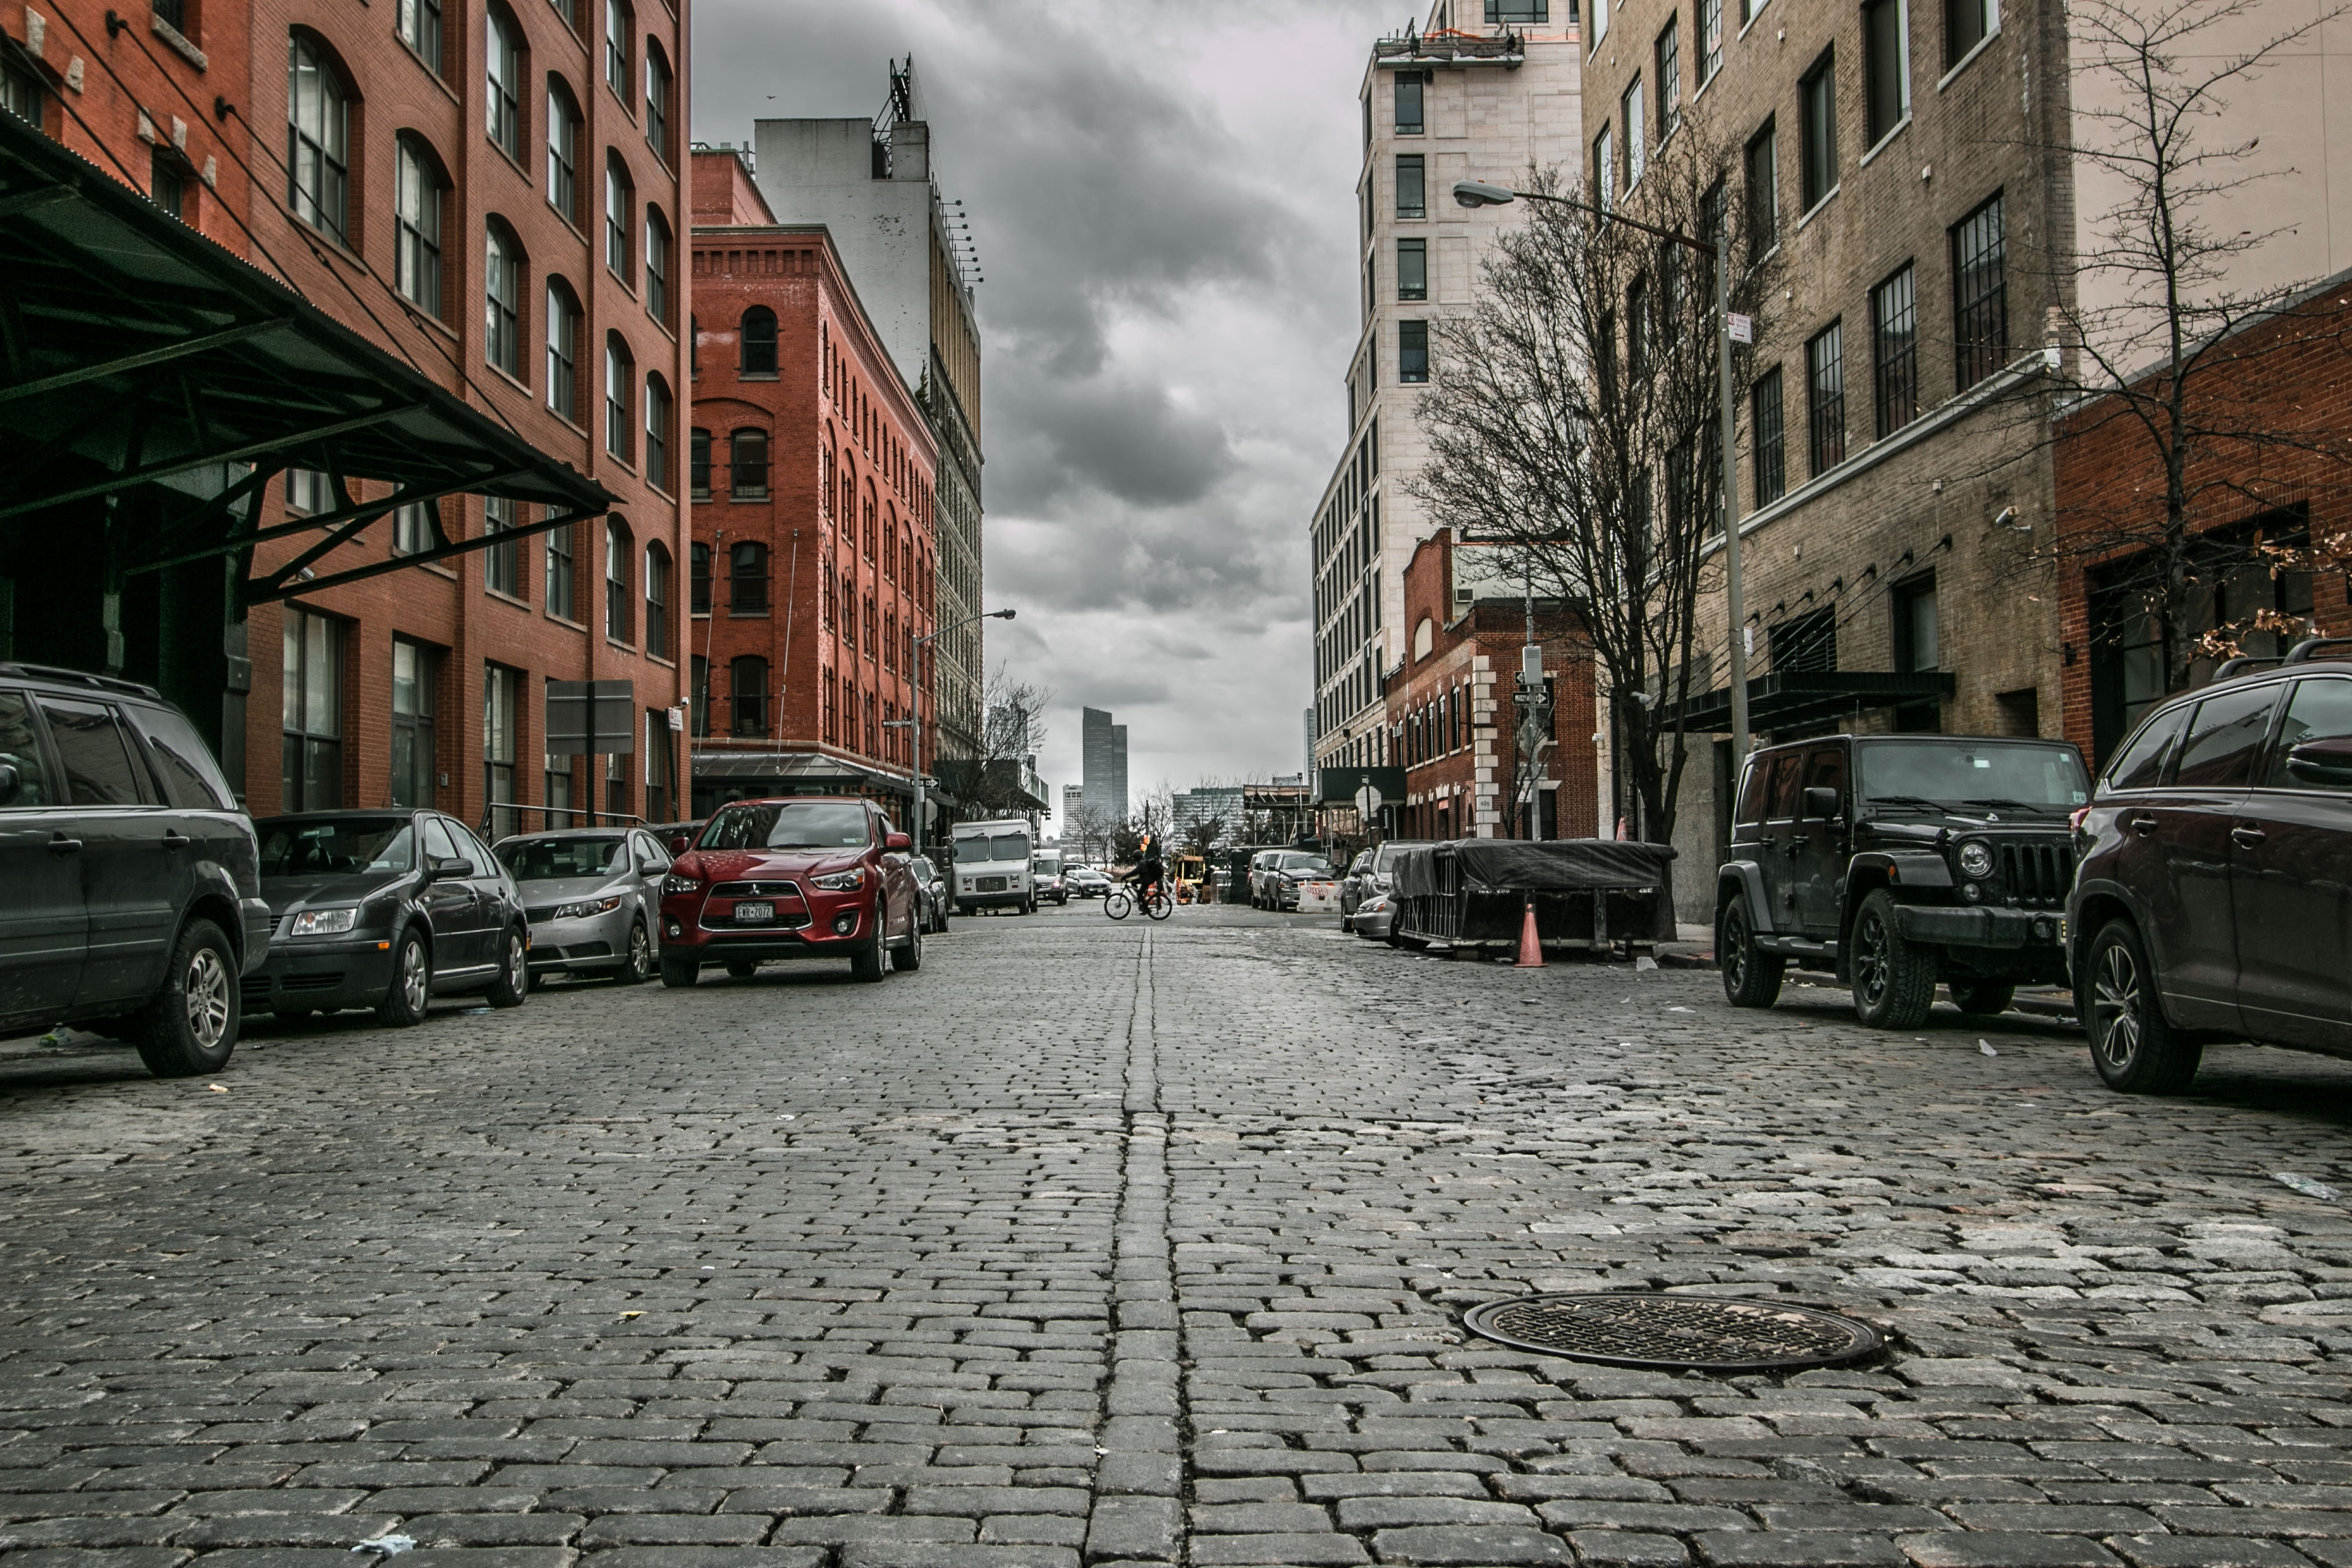 parked cars near buildings beside road